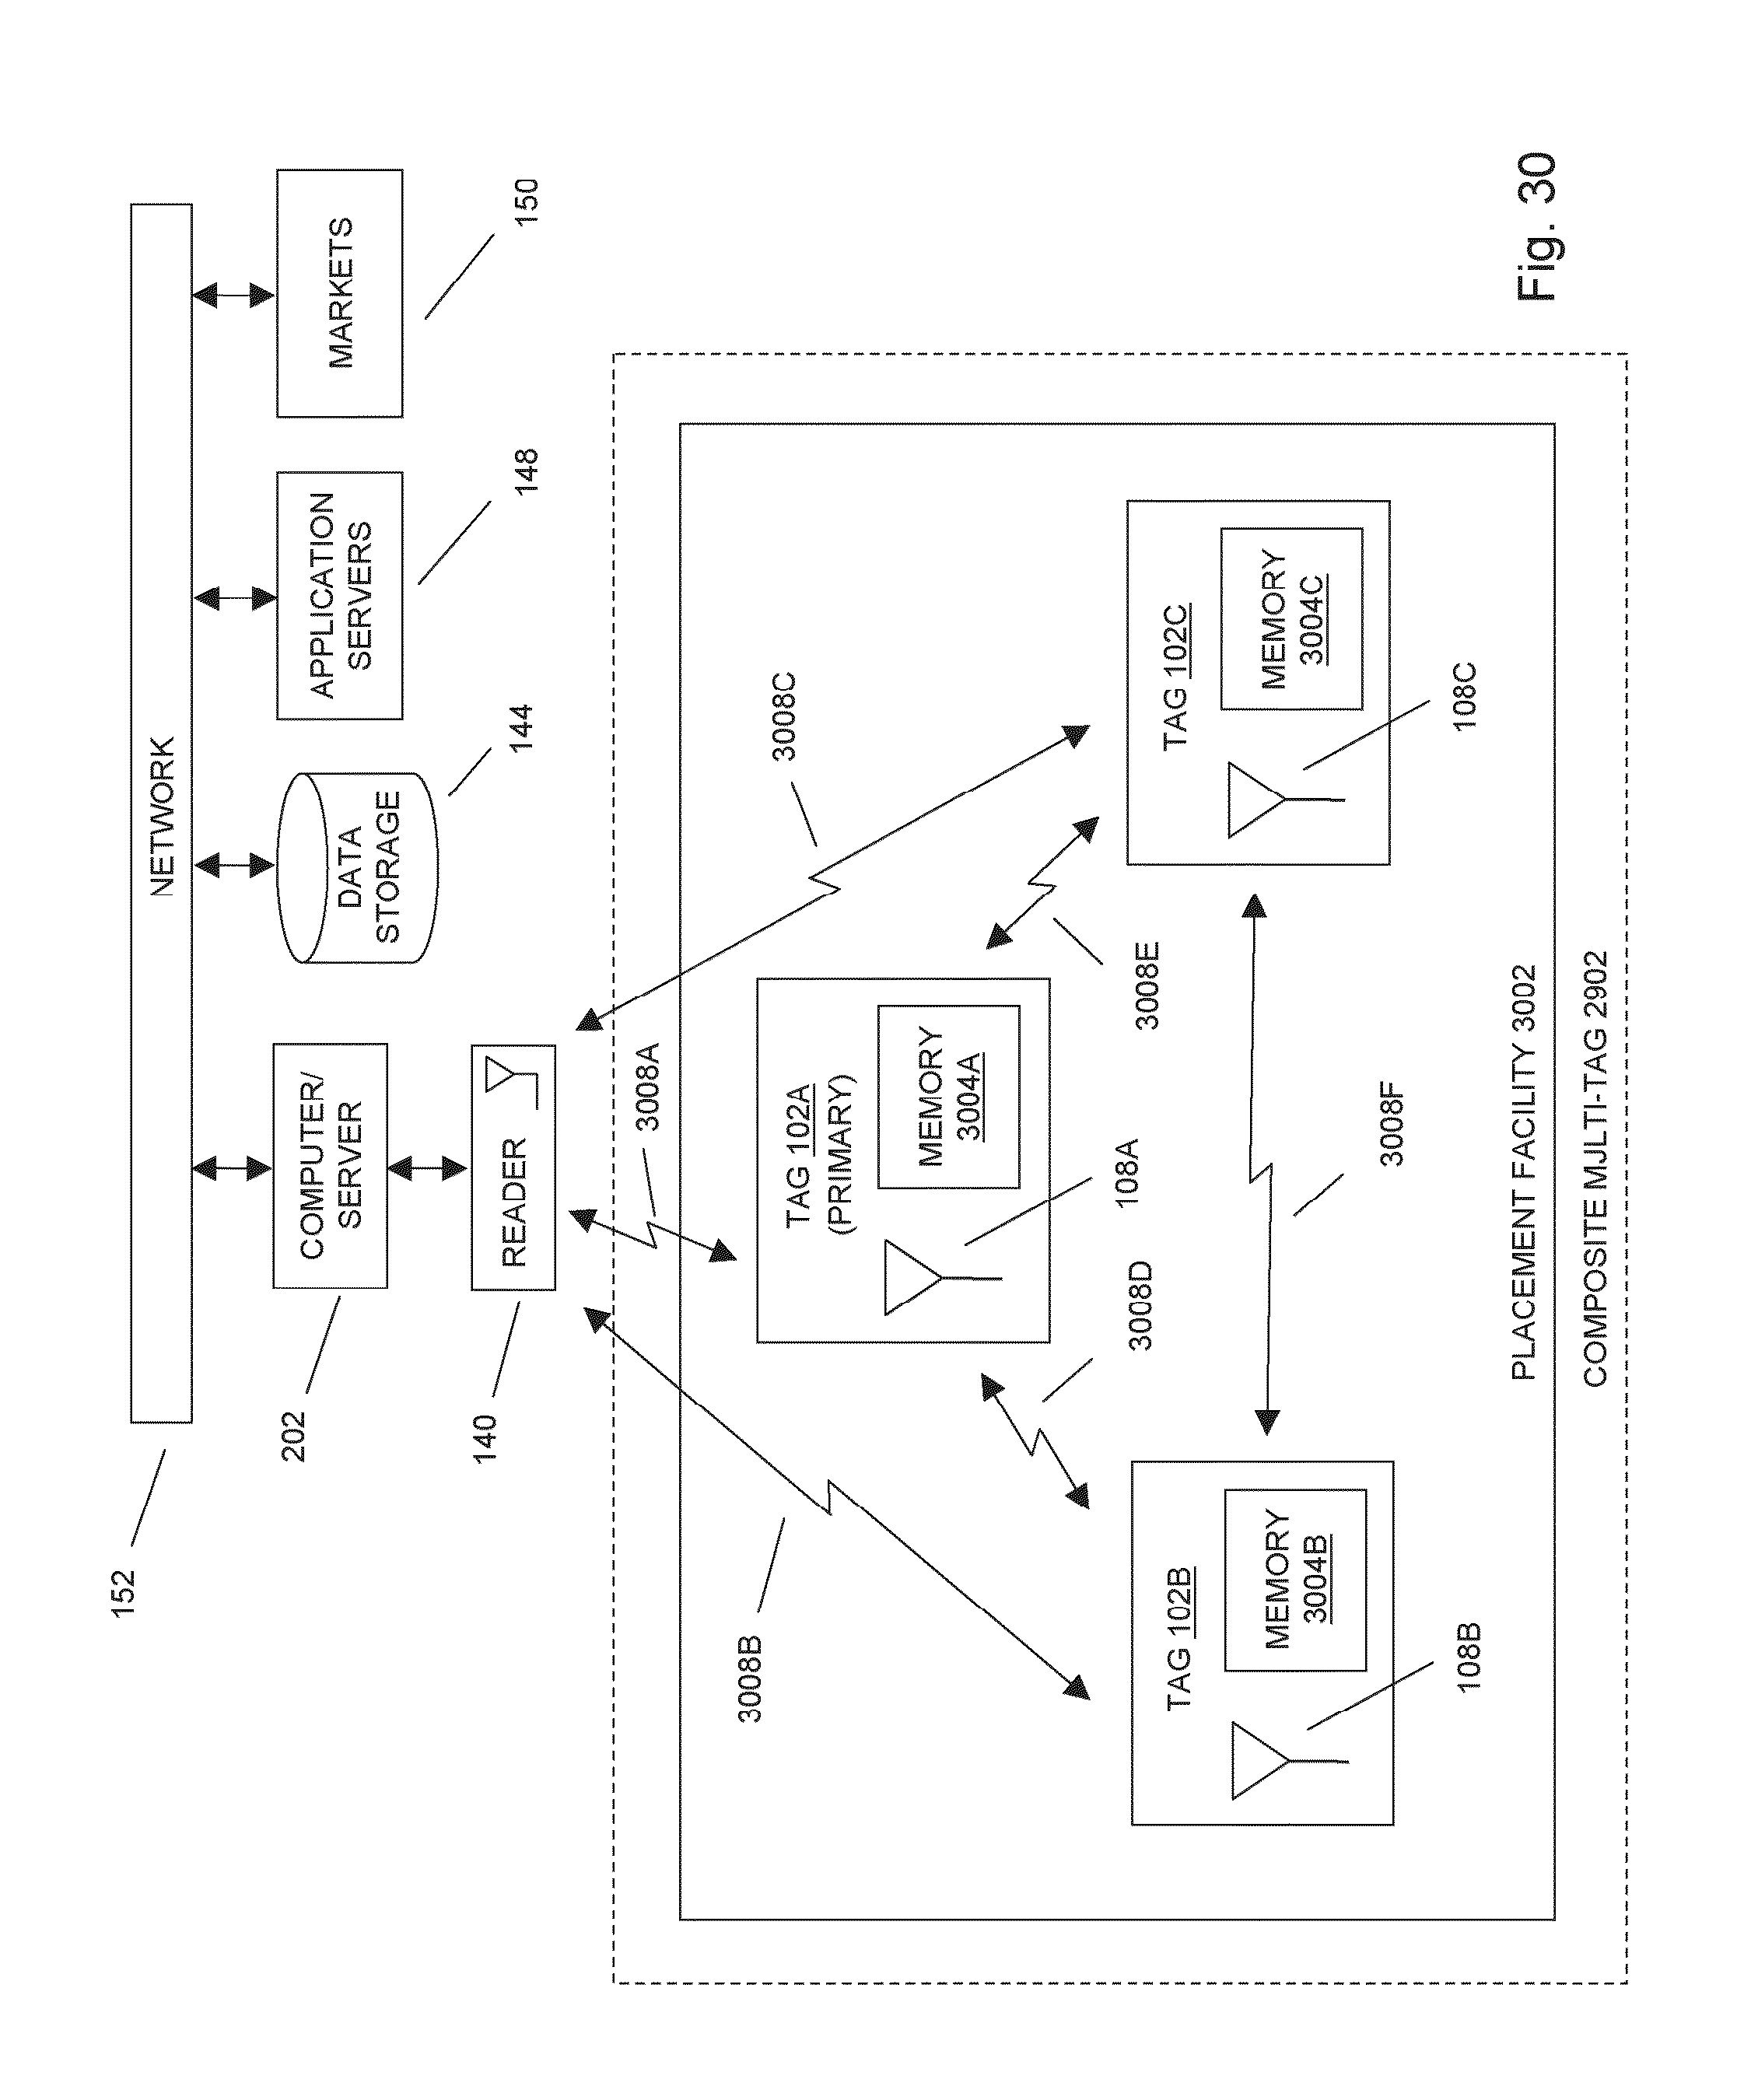 Patent Us 9361568 B2 Fig2 It Has Been Attached An Image Of The Motherboard Block Diagram 0 Petitions